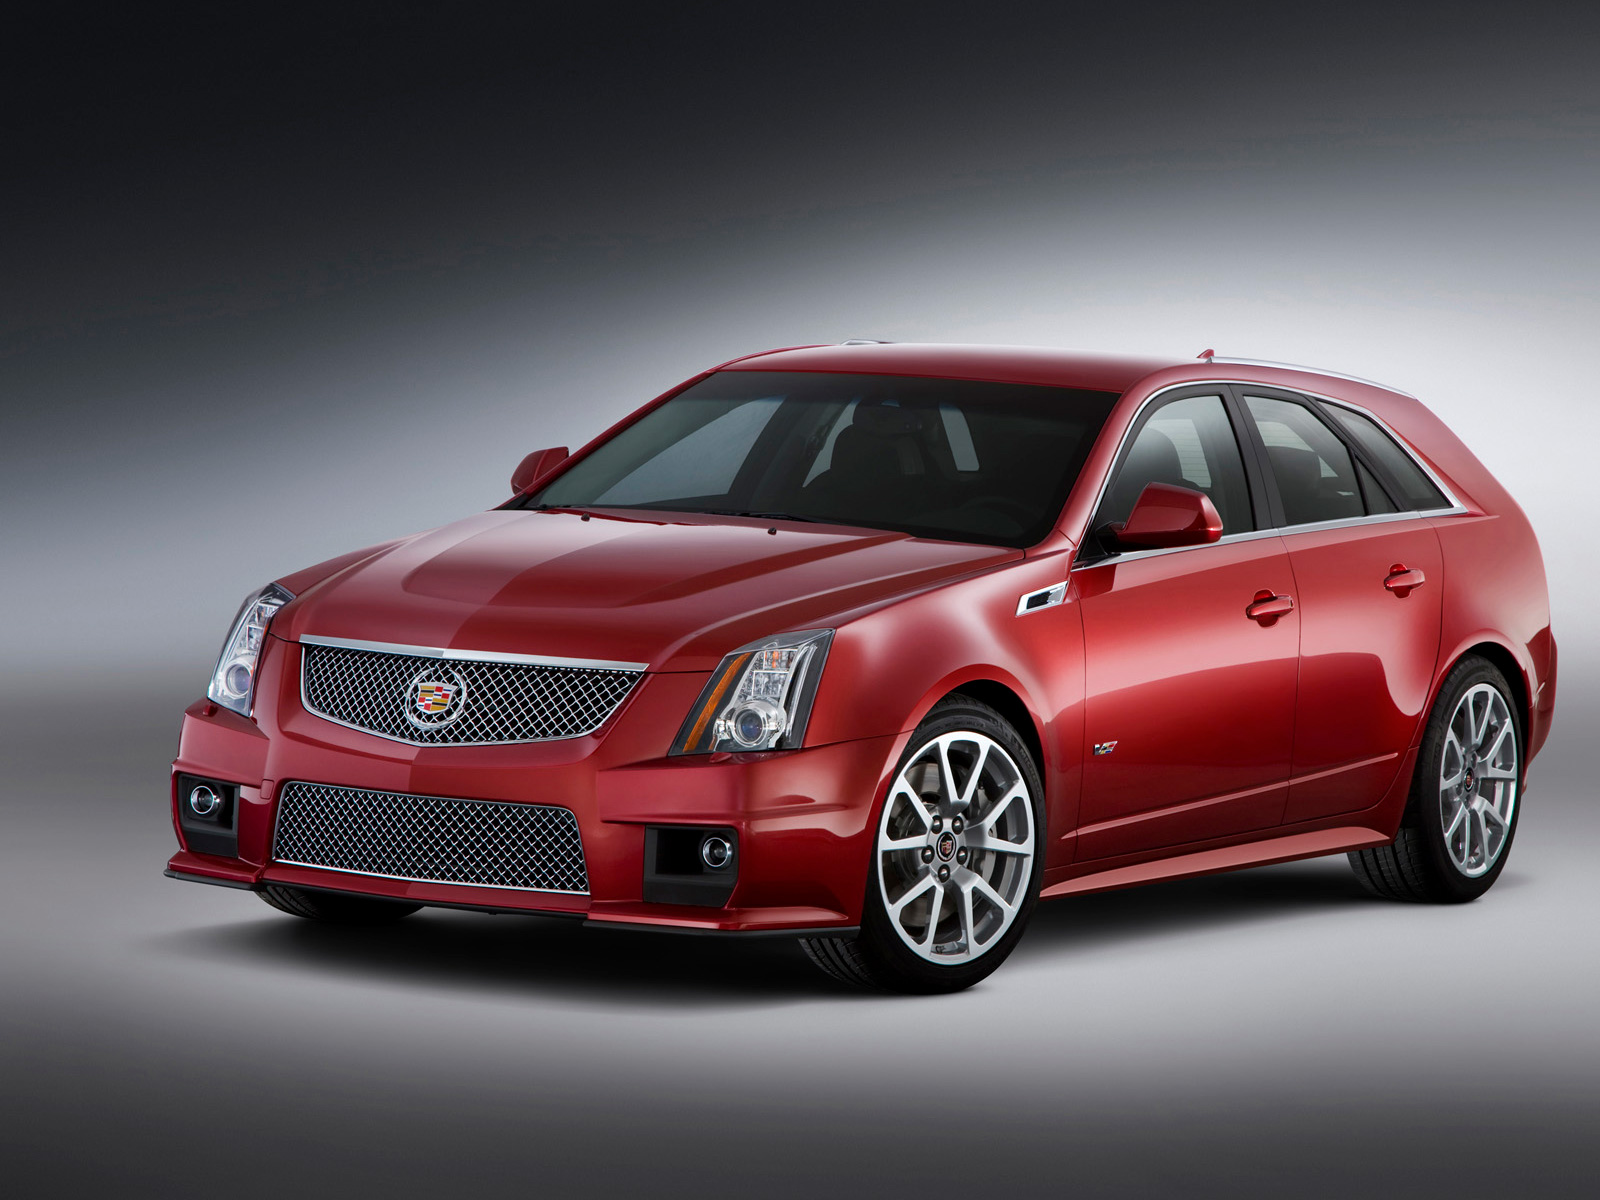 2013 Cadillac CTS V Sport Wagon Front Angle Picture Size Wallpapers HD For Iphone